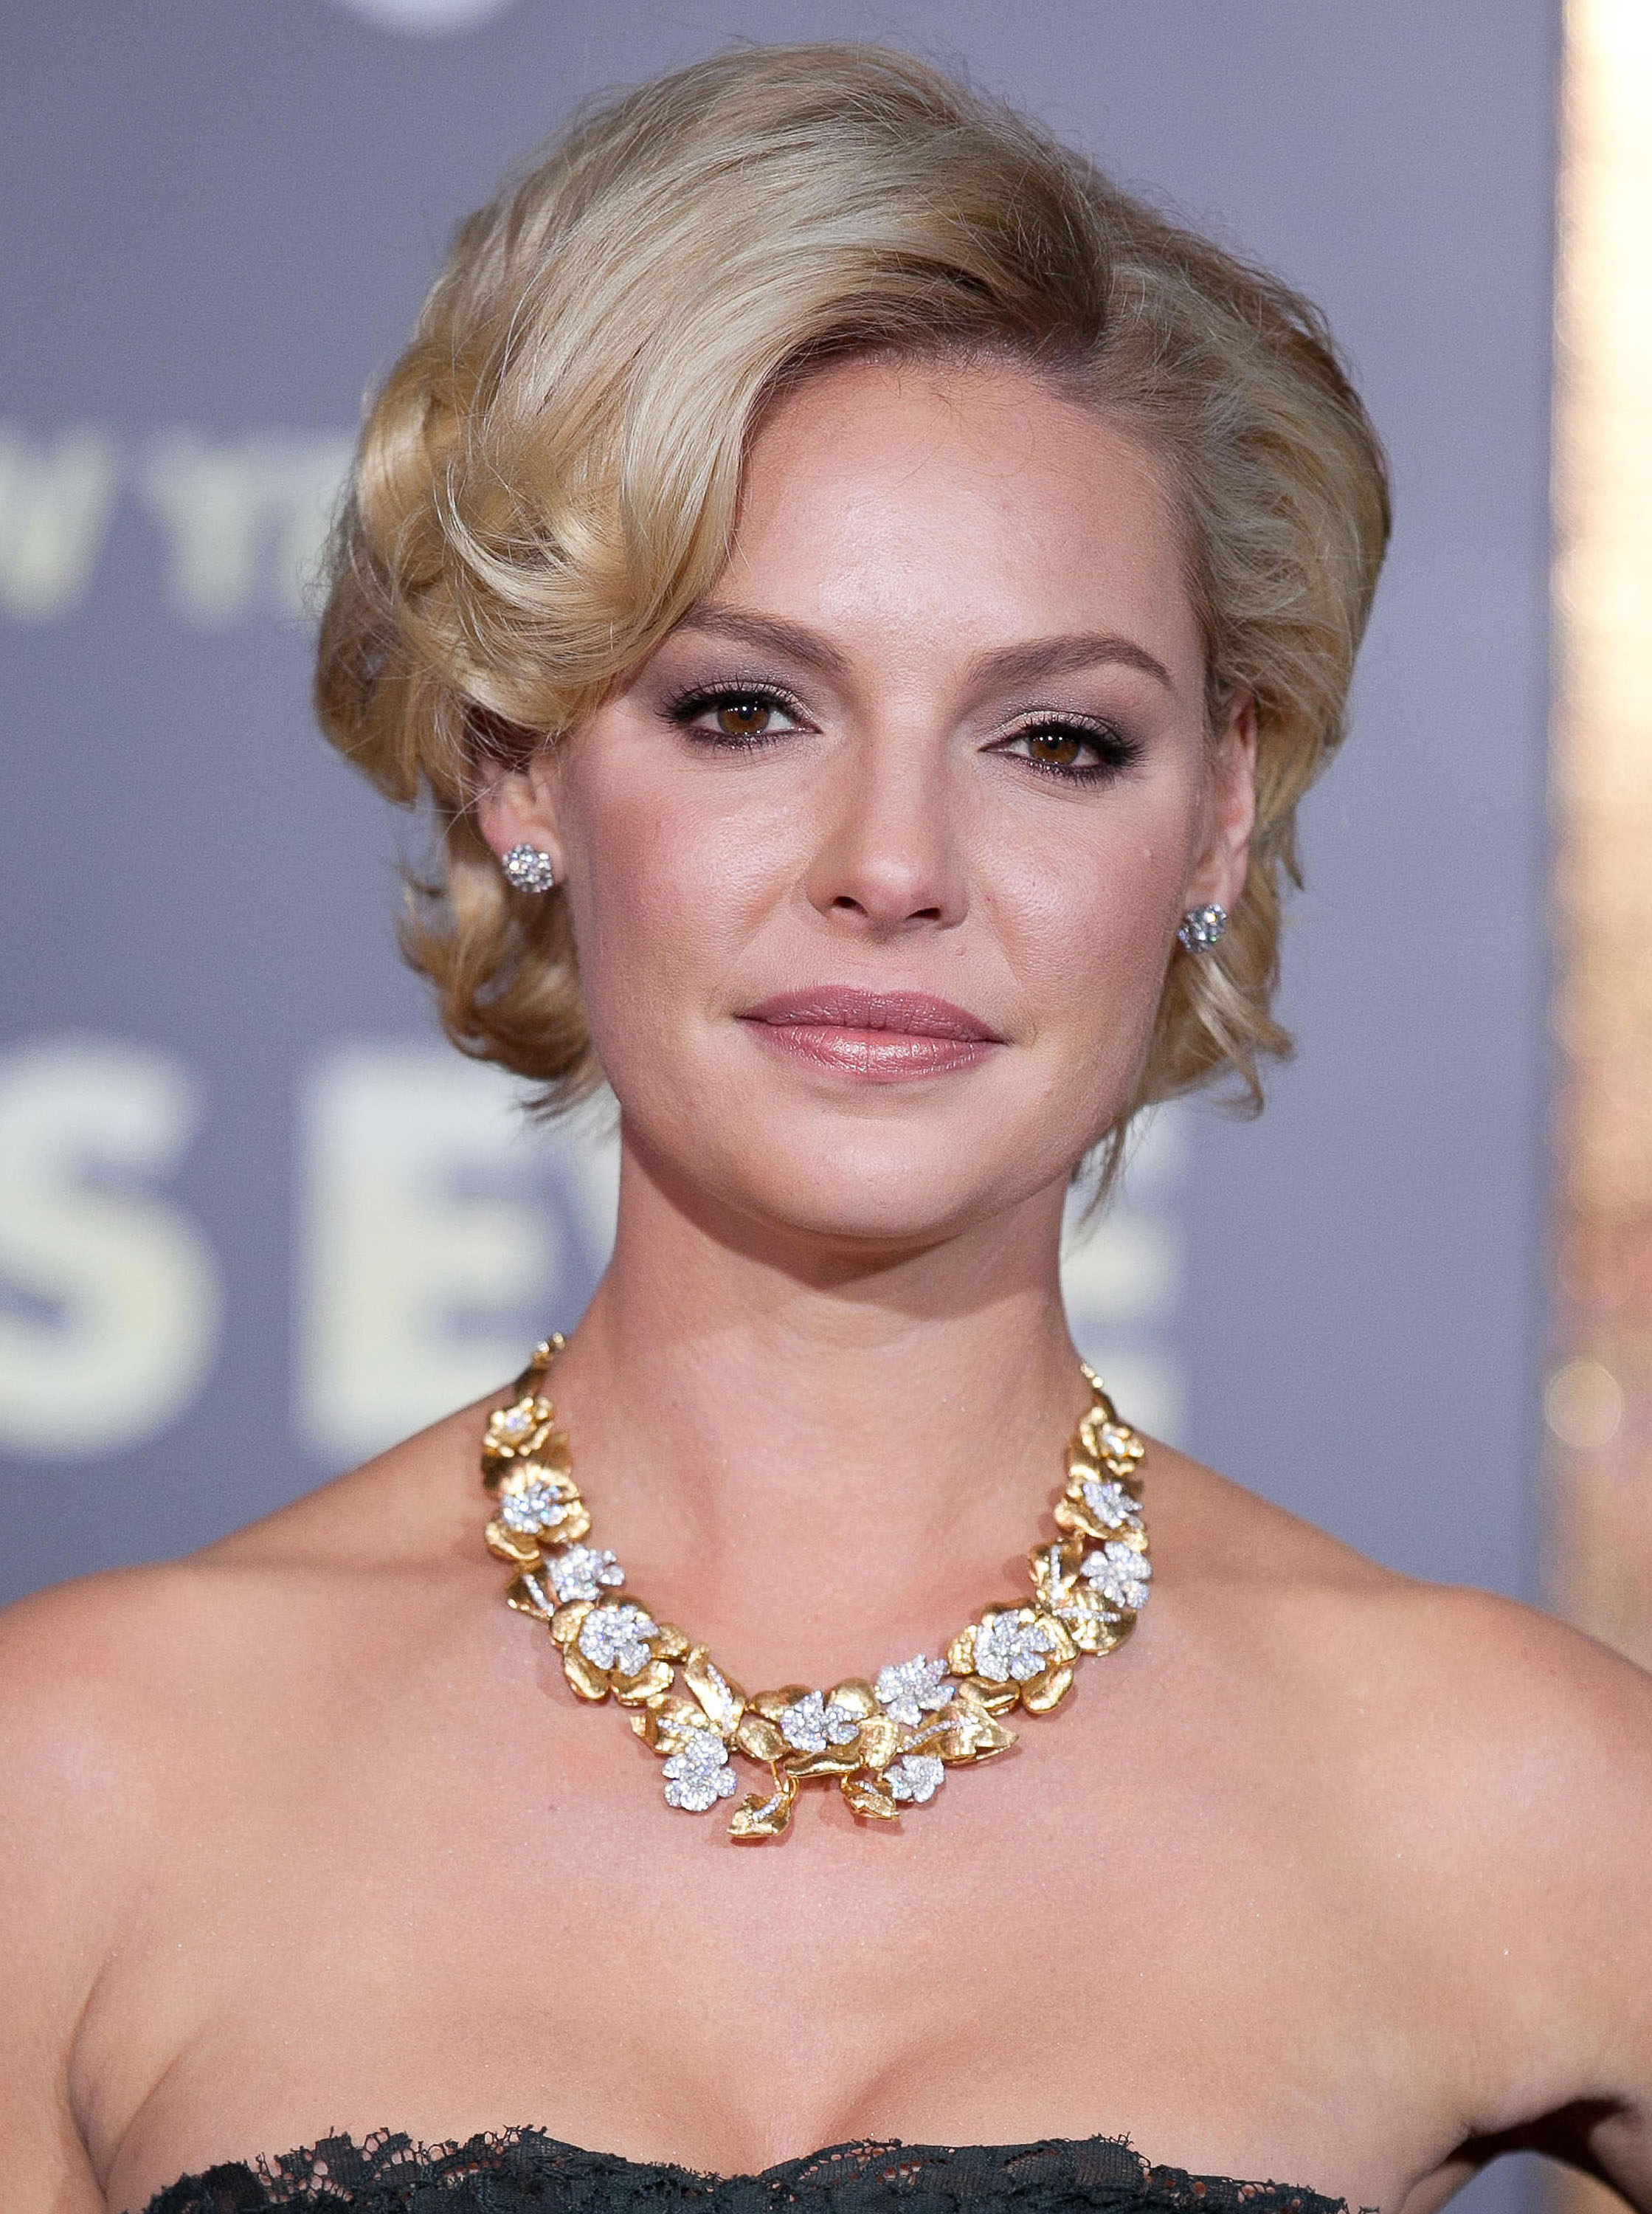 Katherine Heigl's New 'Job' - 3 Photos - Front Row Features Katherine Heigl